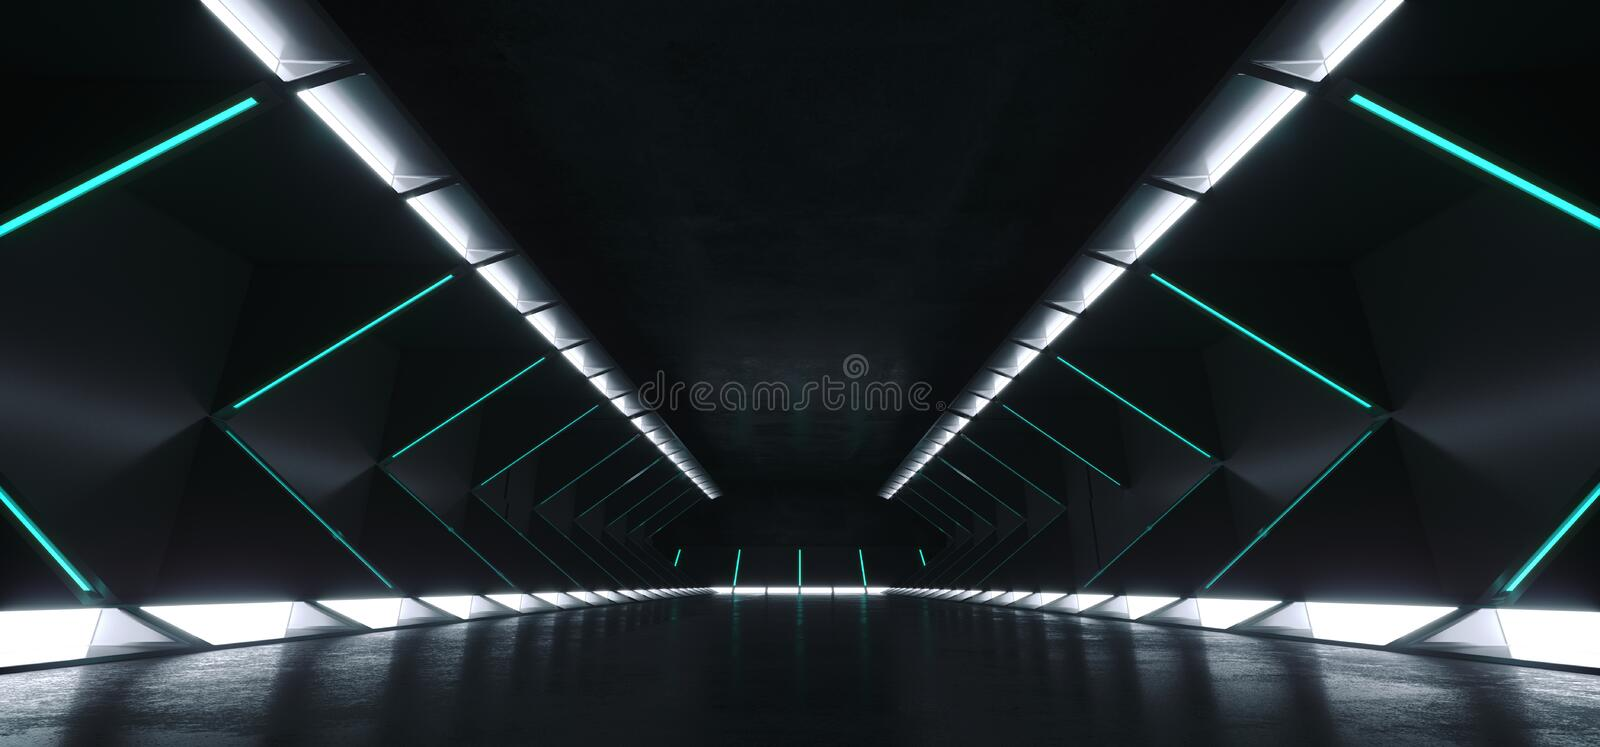 Empty Elegant Spaceship Modern Sci Fi Futuristic Long Dark Grunge Concrete Corridor With White Bright Lights And Blue Green Strip royalty free illustration